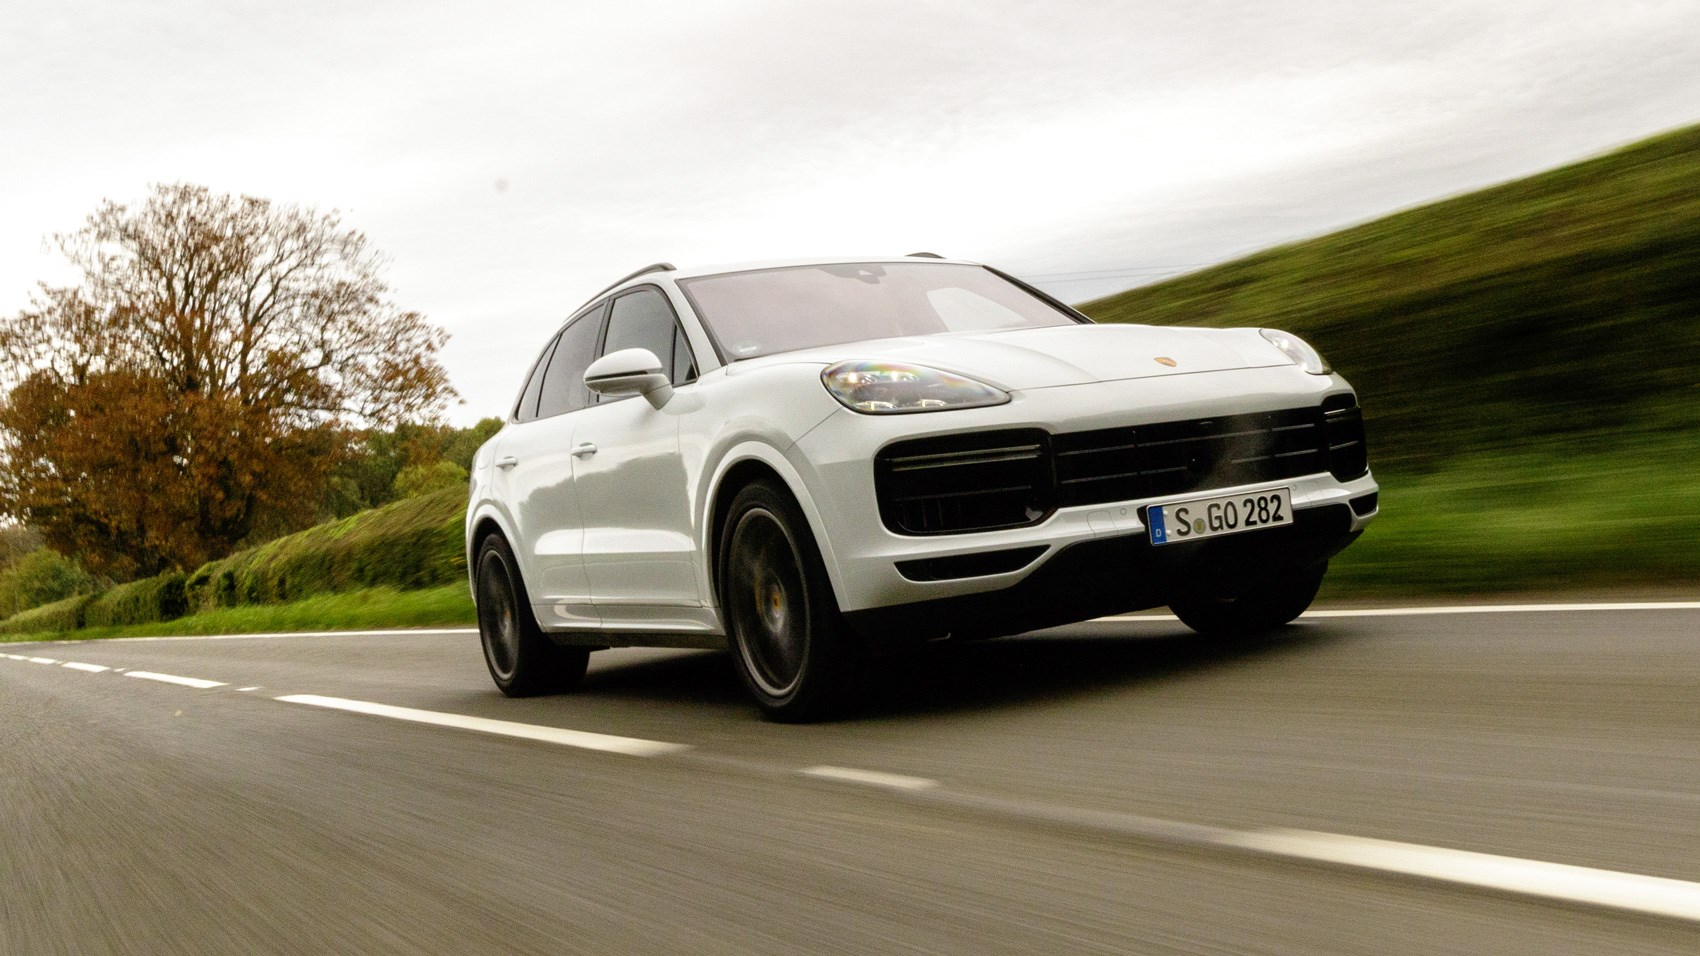 Porsche Cayenne Turbo Front Tracking Low